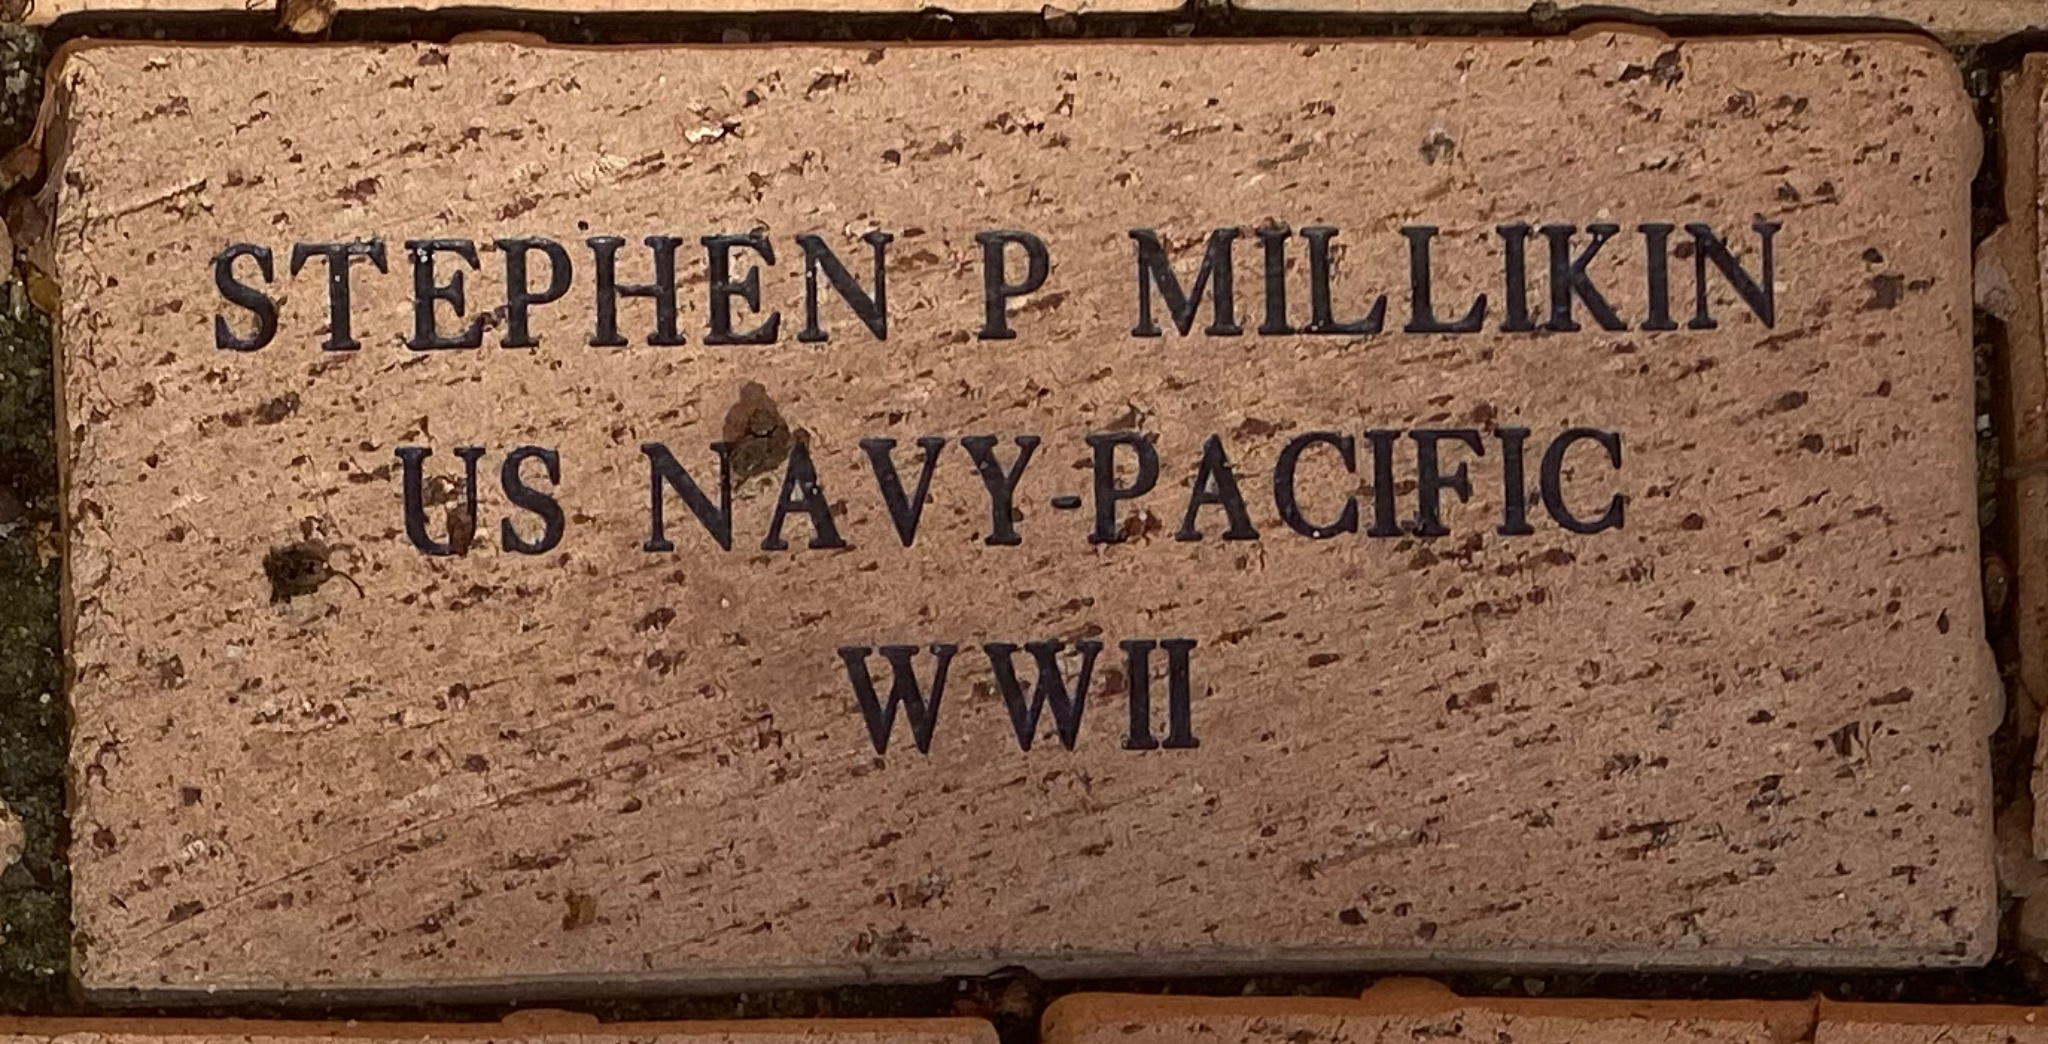 STEPHEN P MILLIKIN US NAVY-PACIFIC WWII